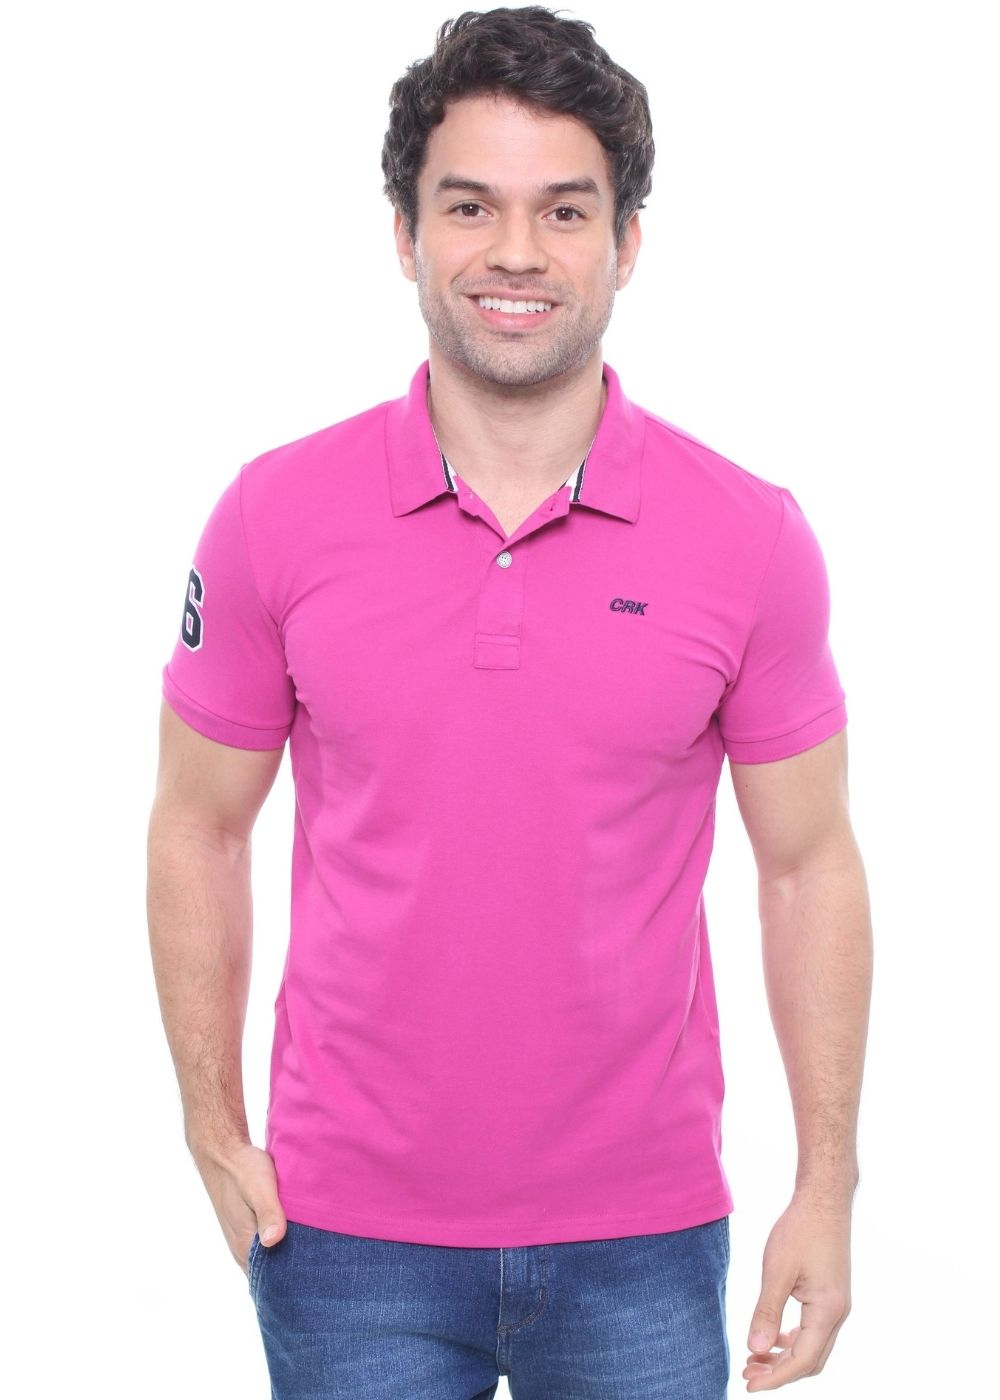 Camisa Gola Polo Piquet Bordada Crocker - 47173  - CROCKER JEANS